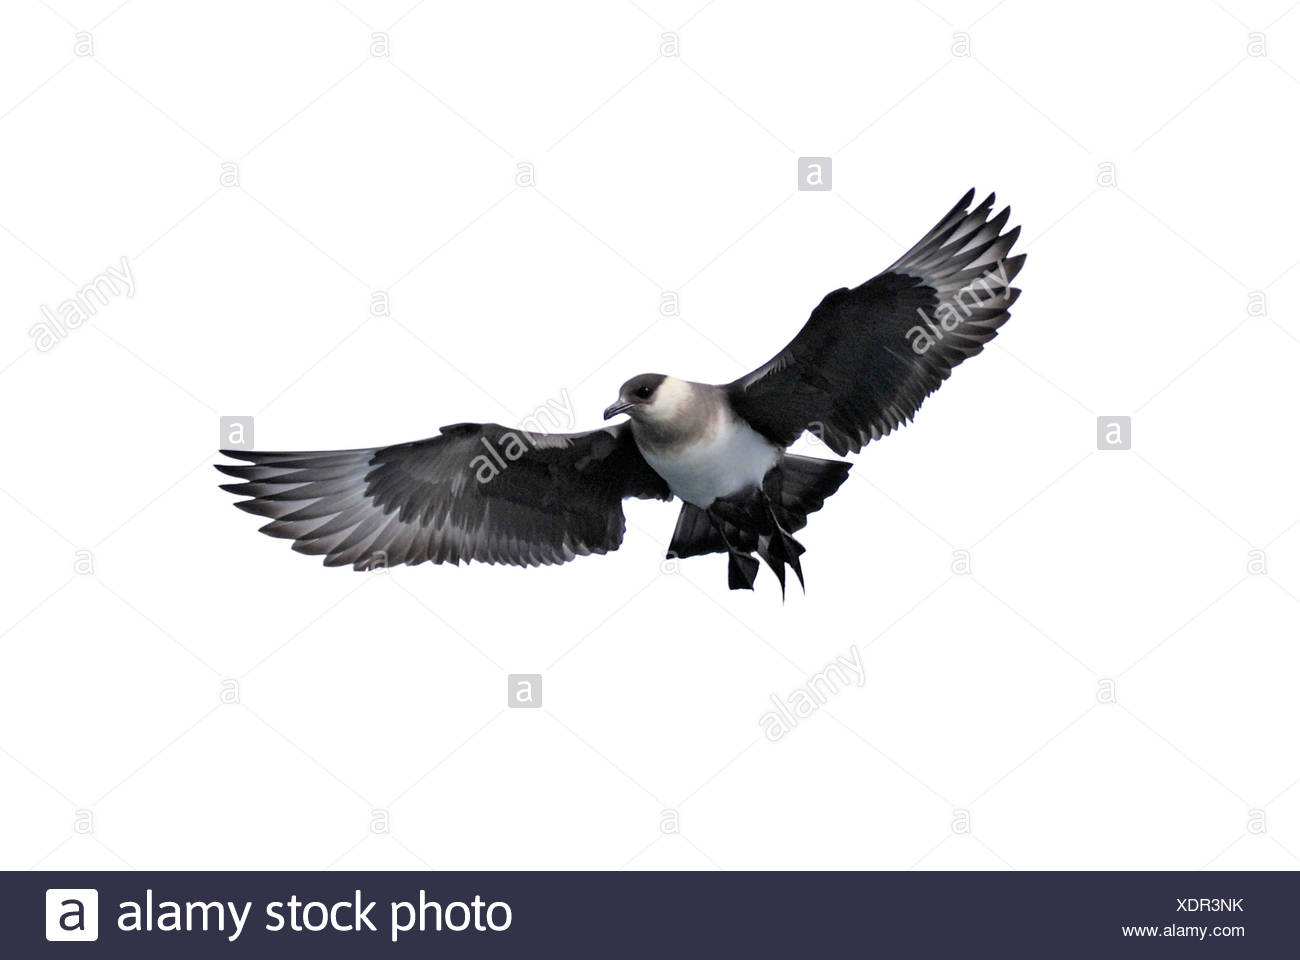 Arctic Skua Stercorarius parasiticus Stock Photo